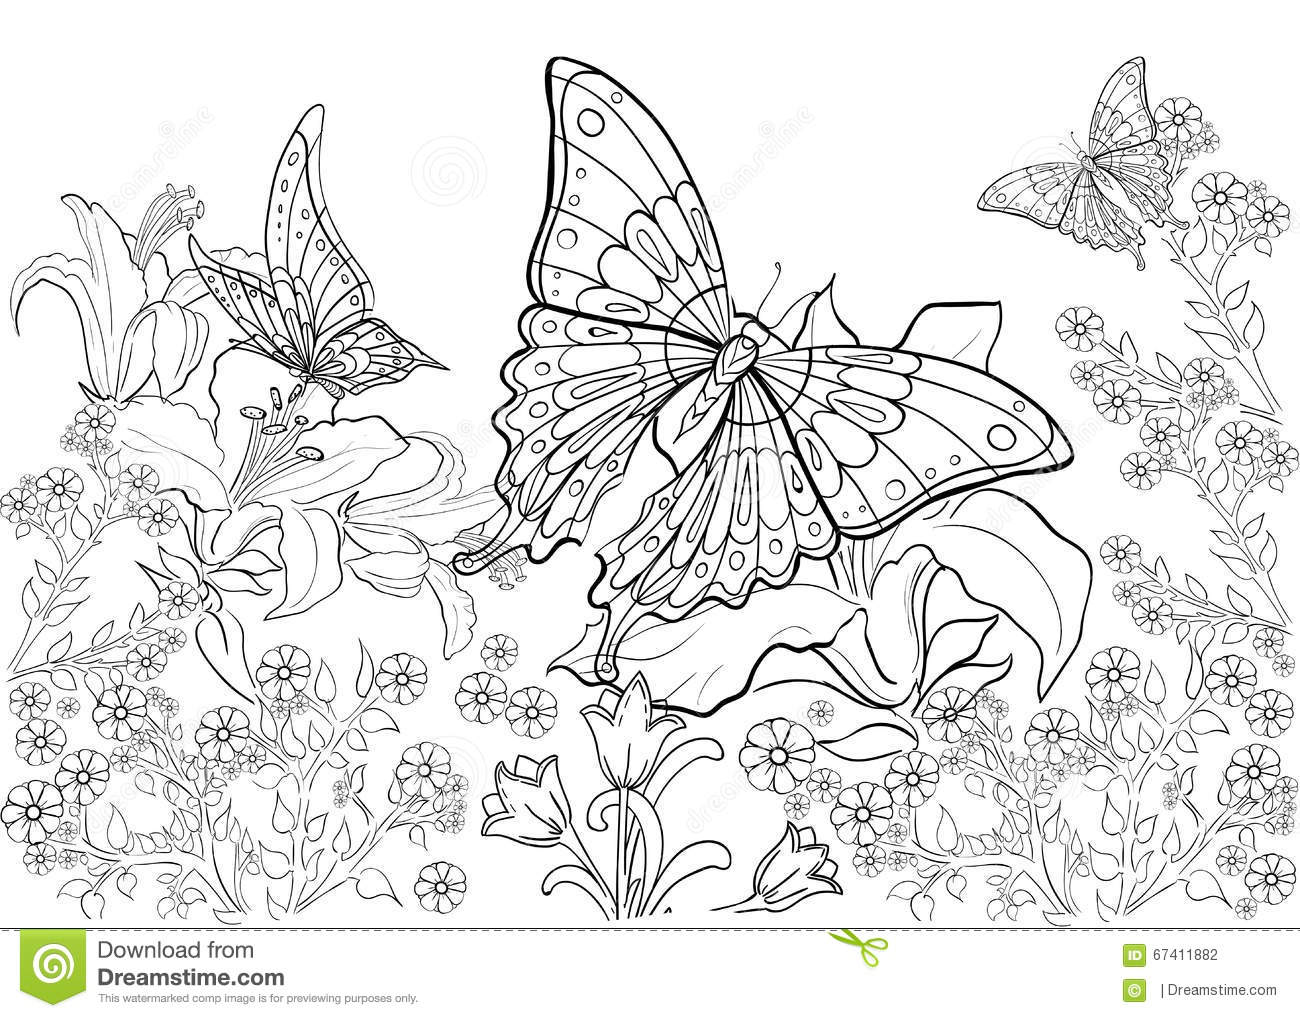 free relaxing coloring pages - hand drawn ink pattern coloring book coloring for adult